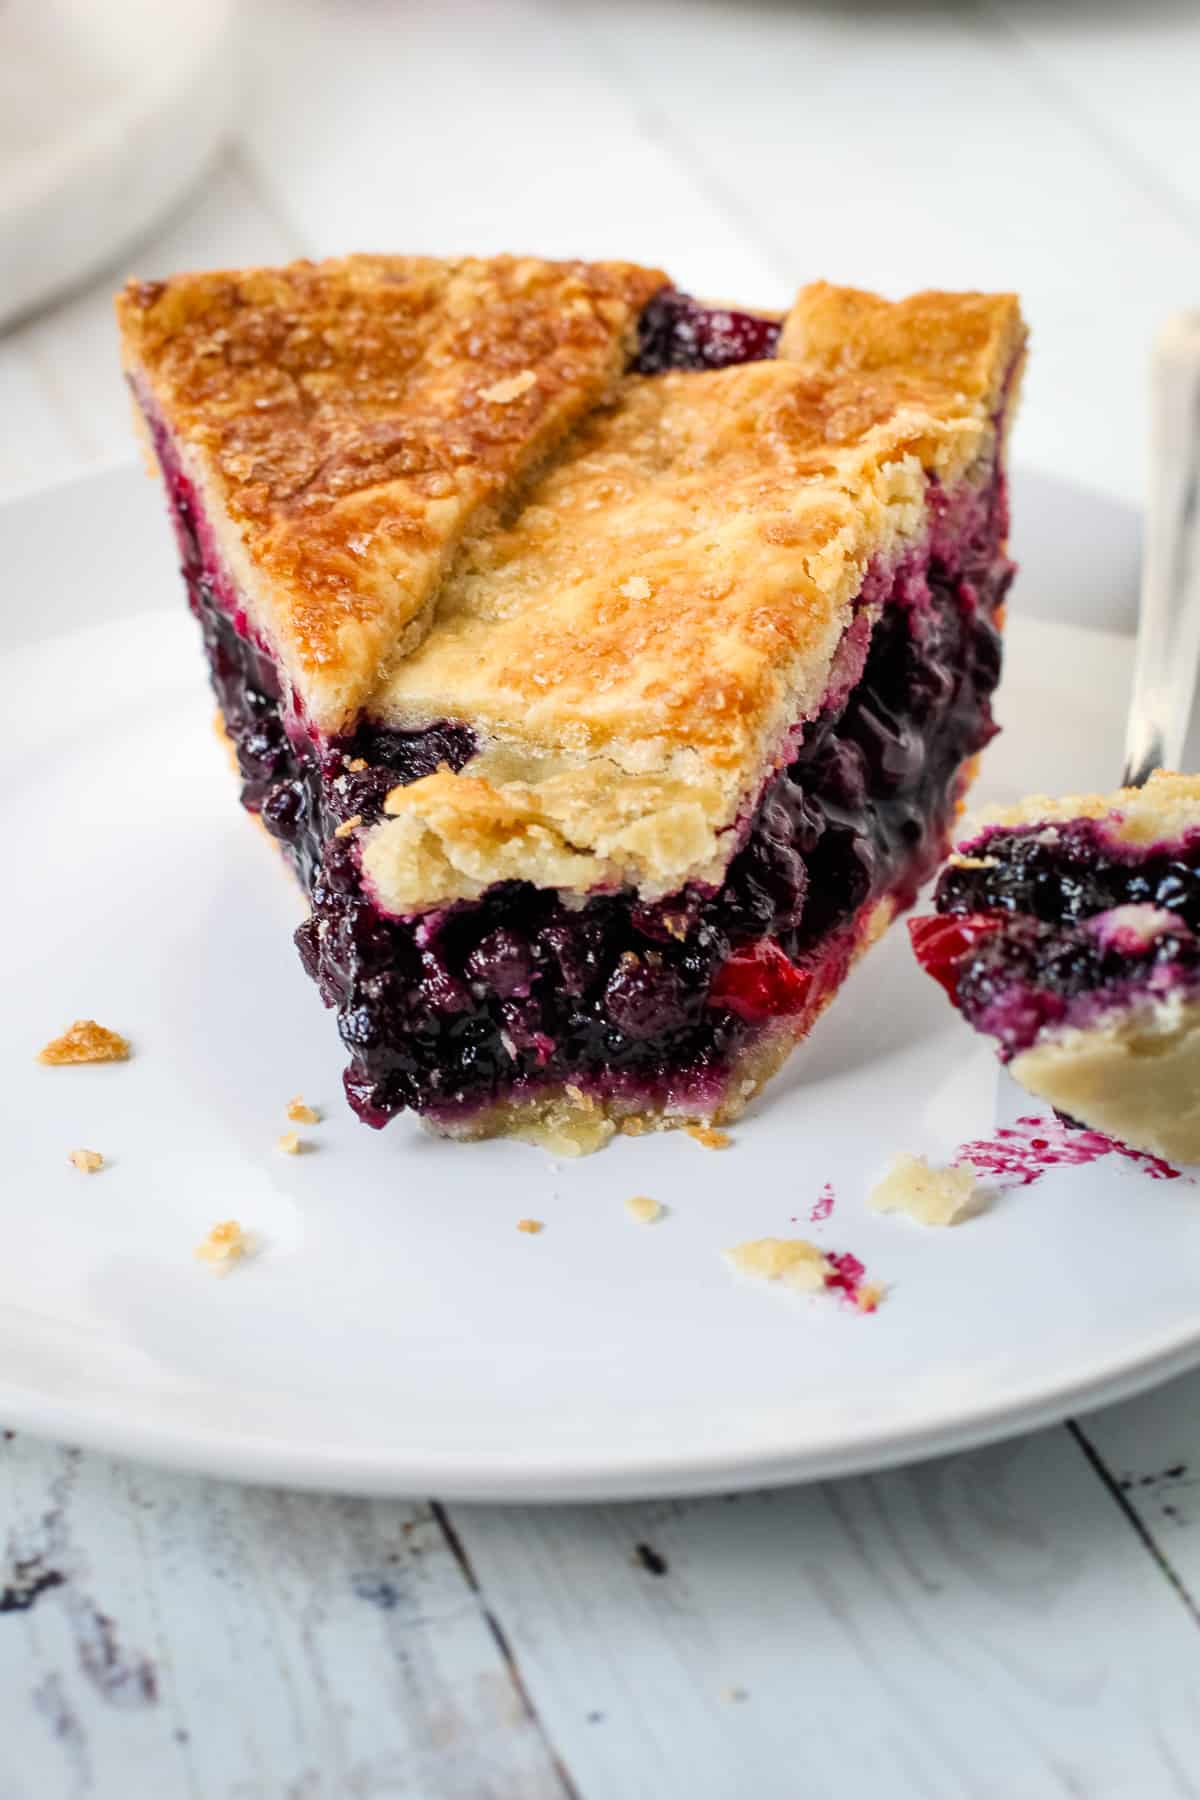 Blueberry and cranberry pie with a fork.